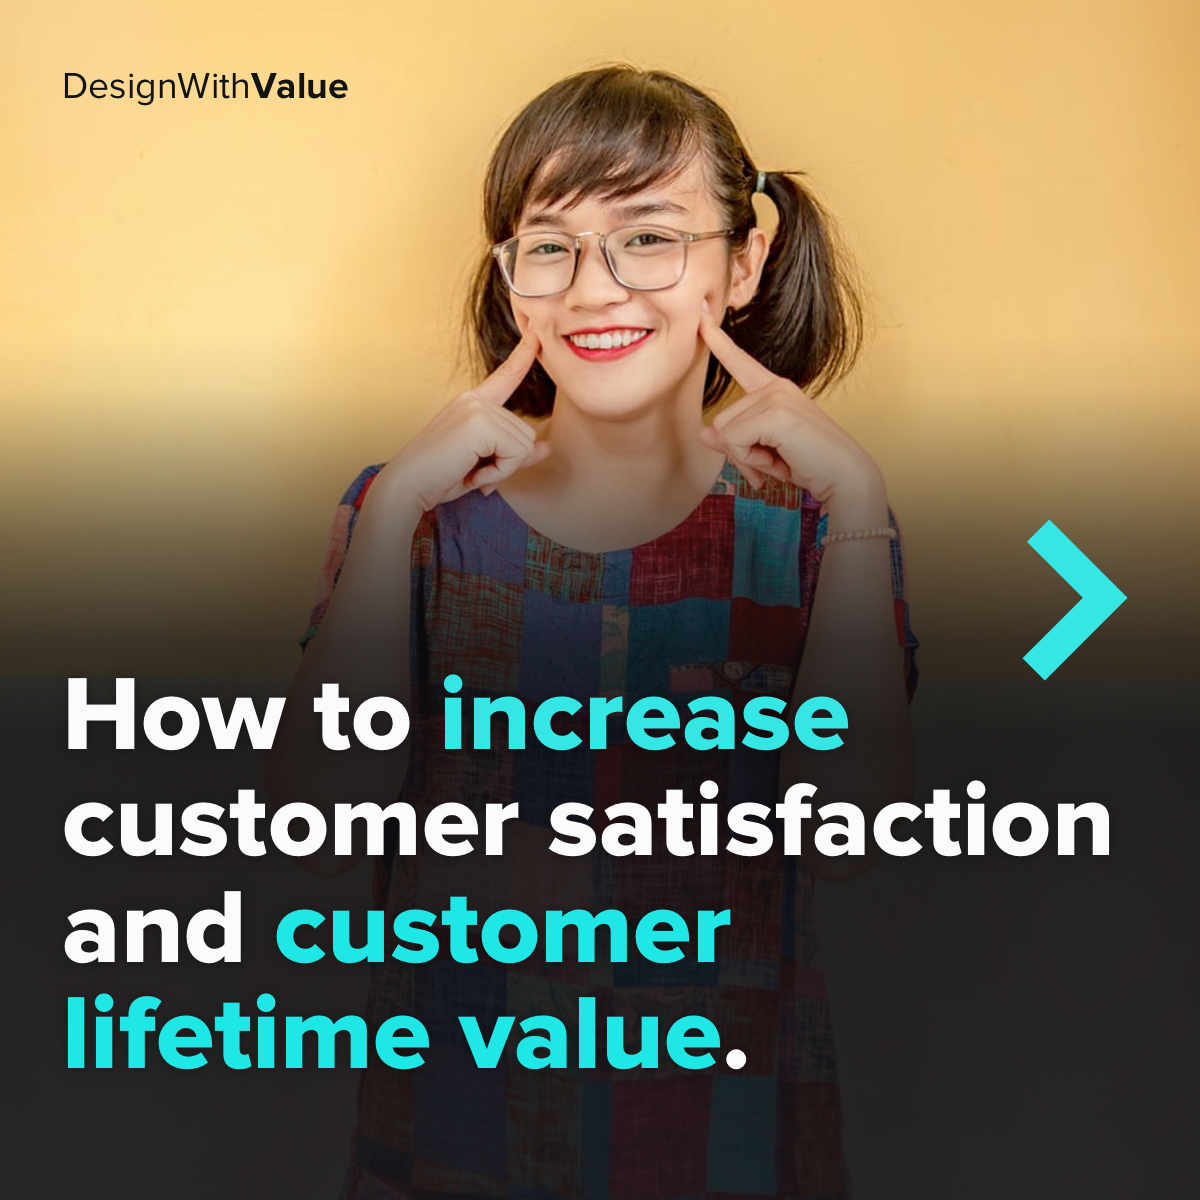 How to increase customer satisfaction and customer lifetime value.